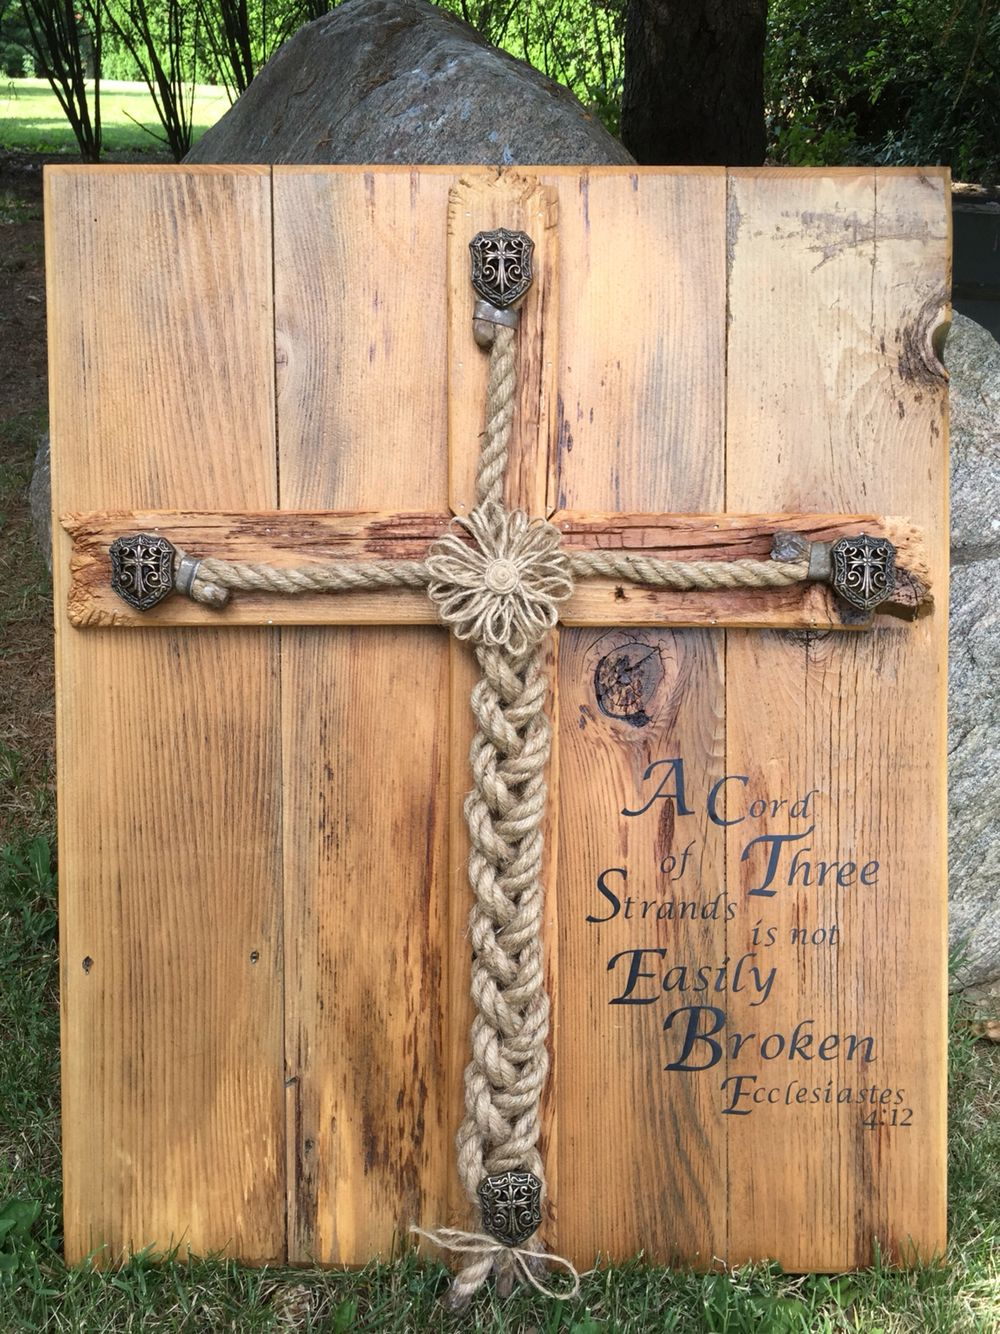 Personalized Rustic Wedding Alternative Unity Ceremony Idea Jute Braided Rope Wood Sign A Cord Of Three Strands